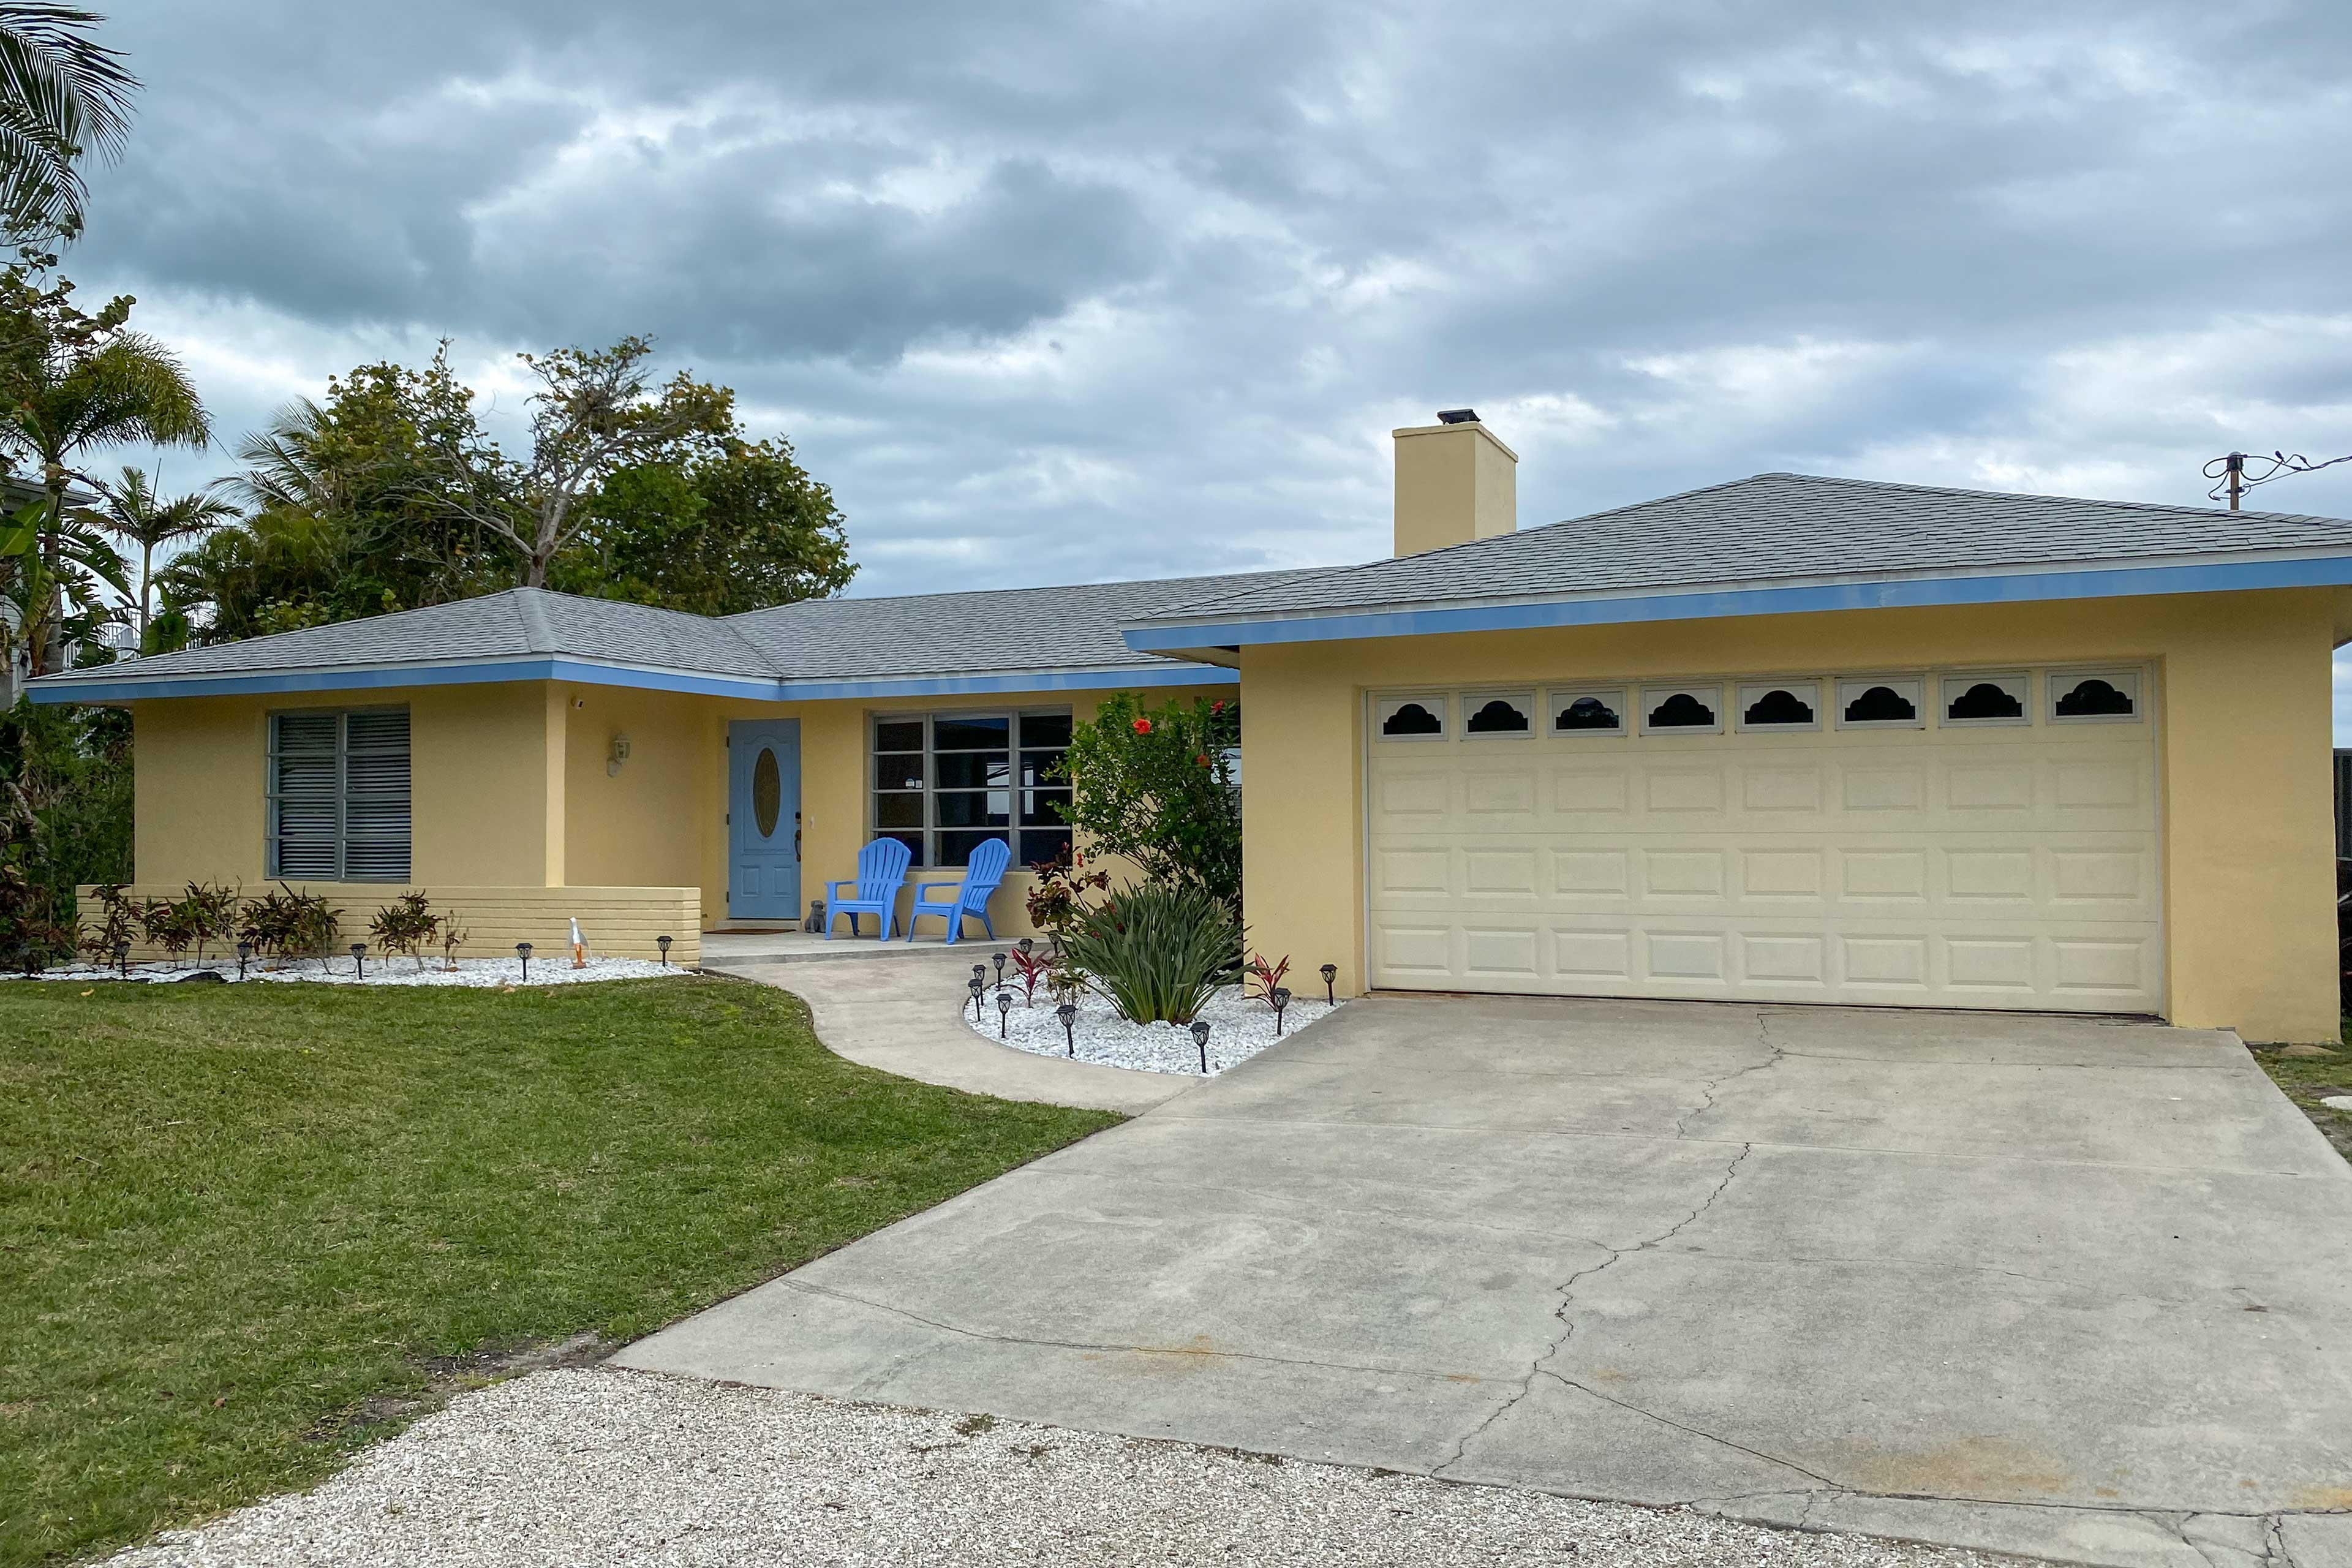 Picture yourself living the good life at this 2-bed, 2-bath vacation rental.